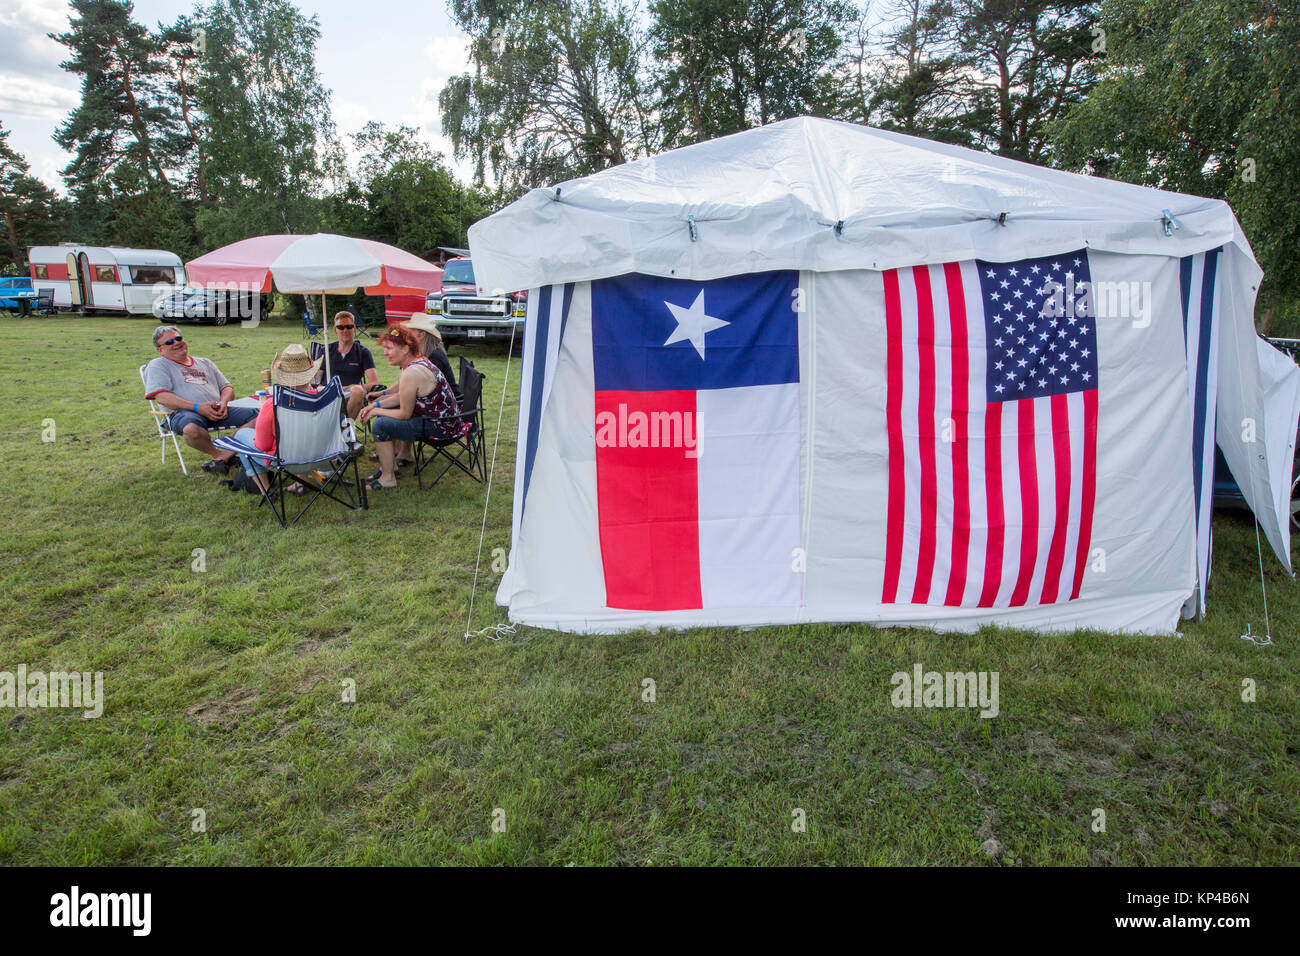 Texas and American flag on a tent Upplands Väsby Sweden Stock Photo Royalty Free Image 168512365 - Alamy & Texas and American flag on a tent Upplands Väsby Sweden Stock ...